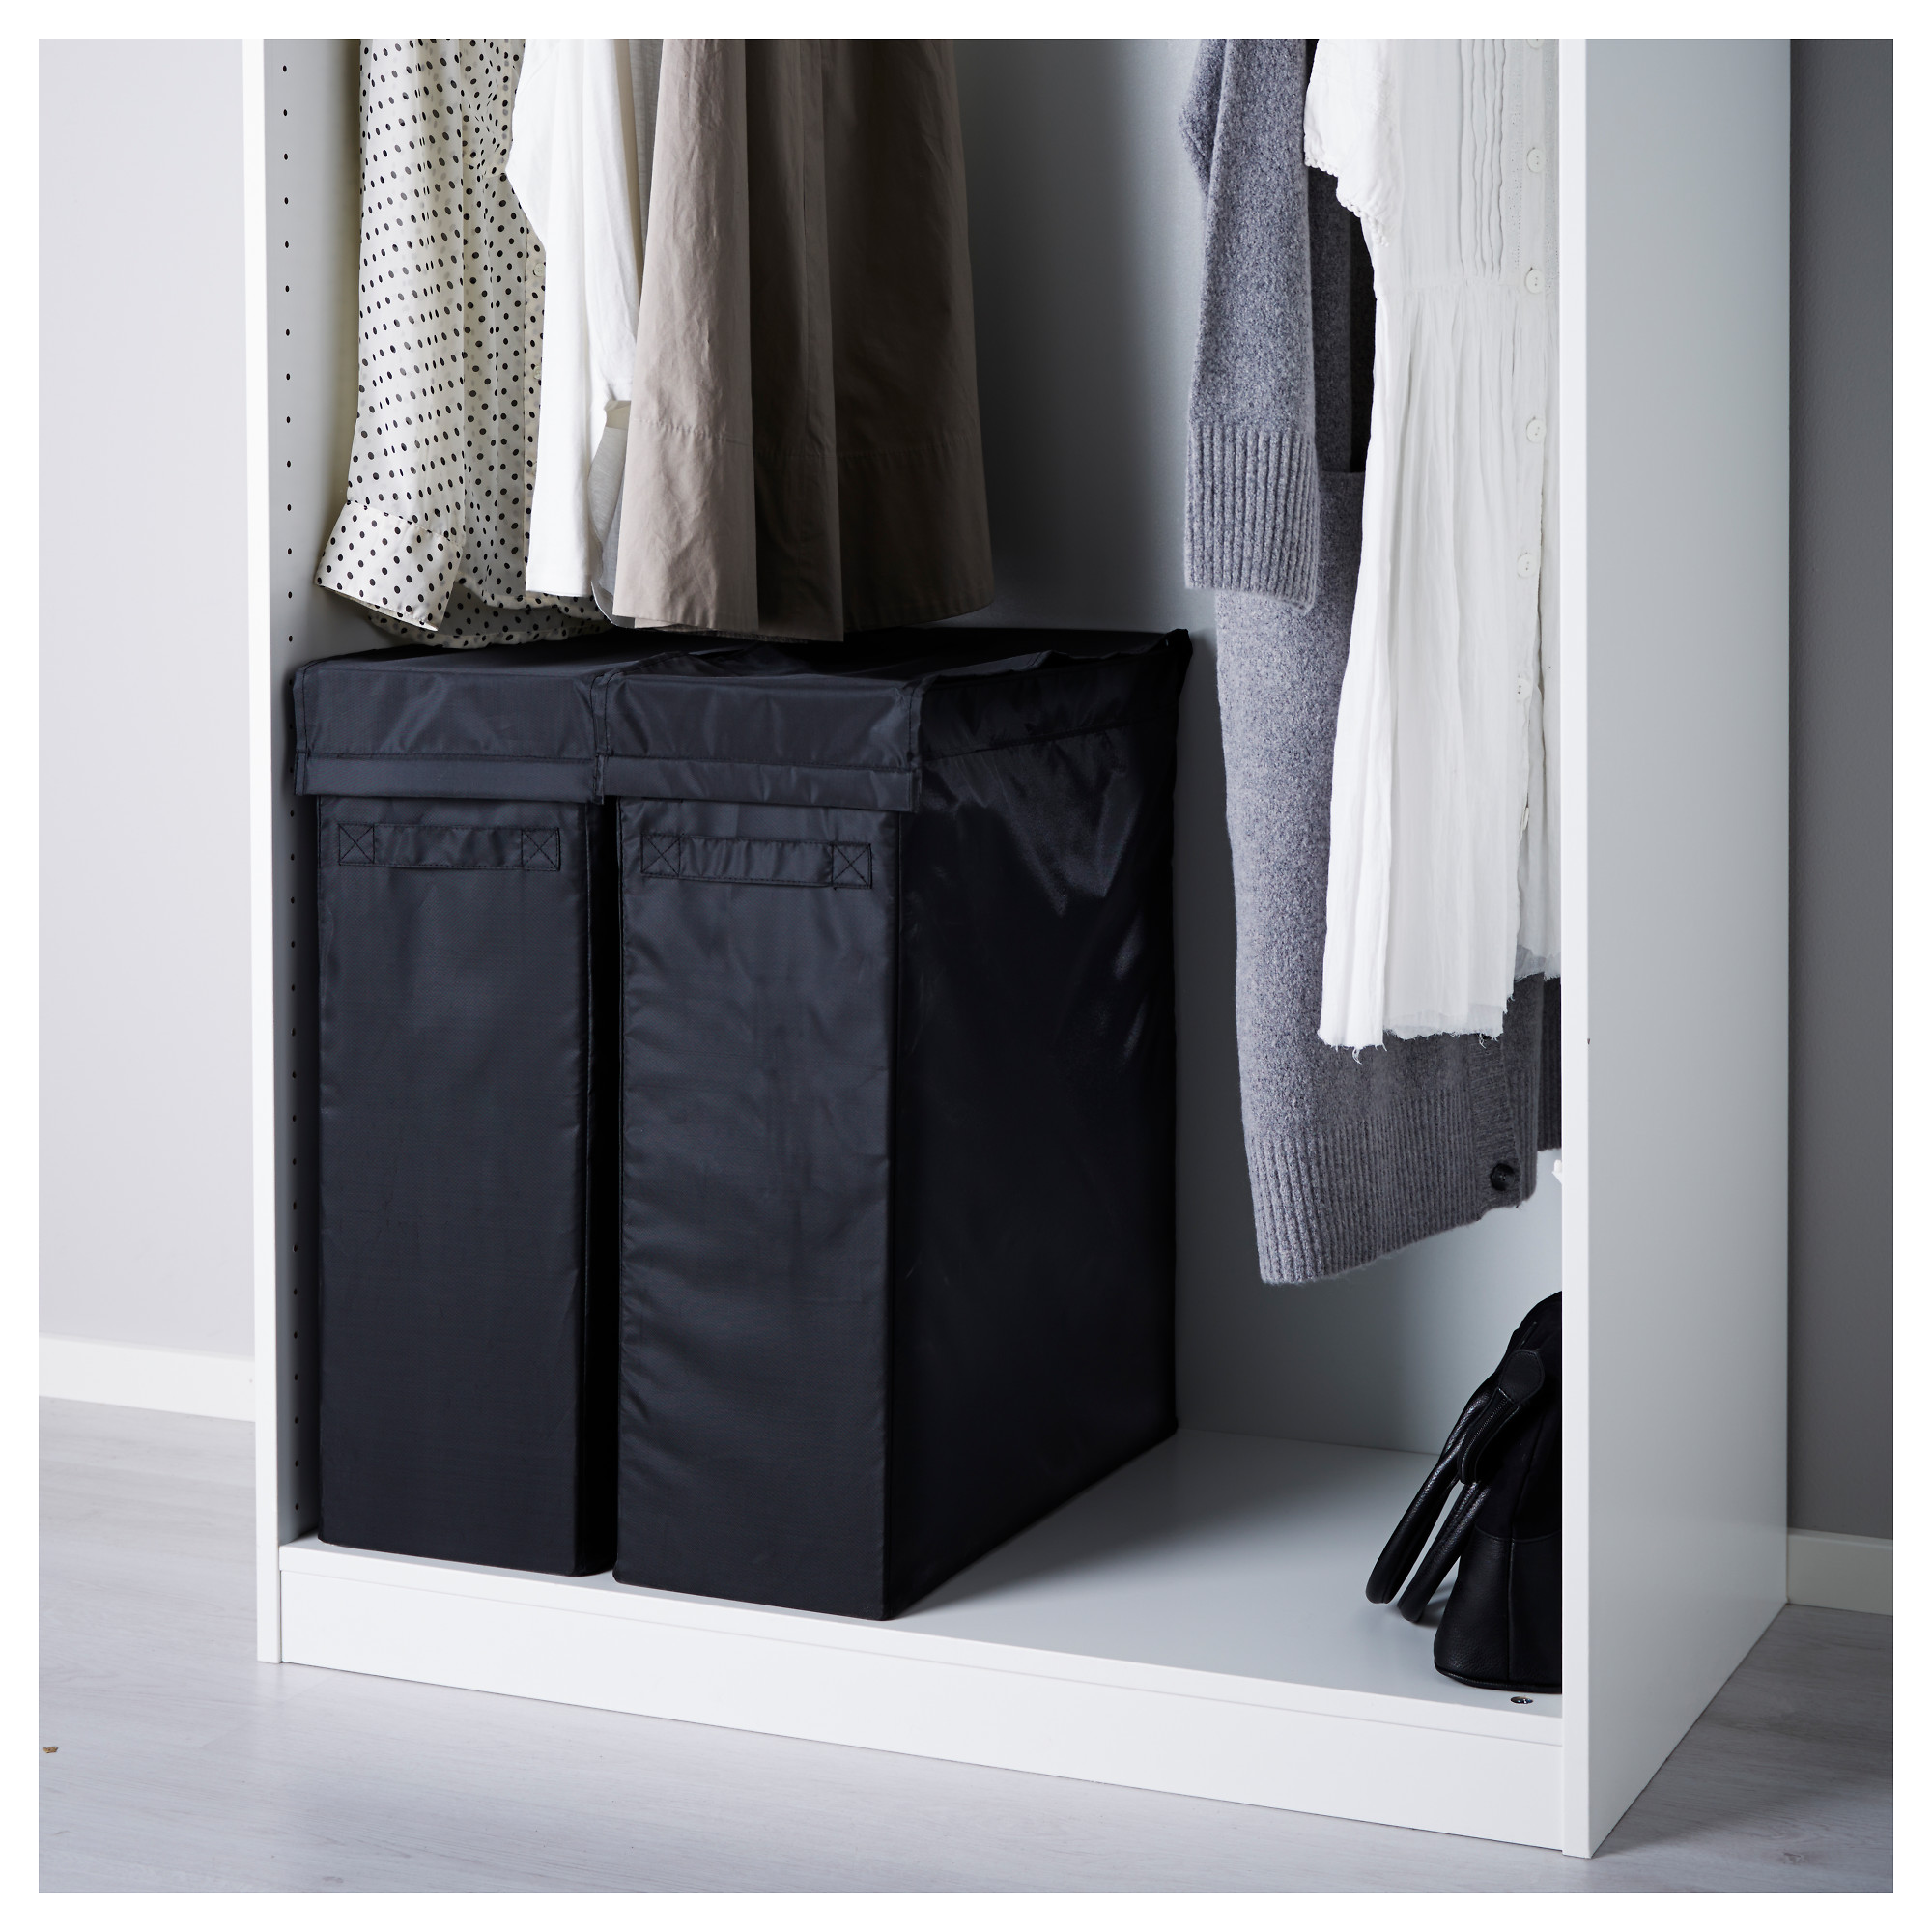 SKUBB Laundry bag with stand IKEA